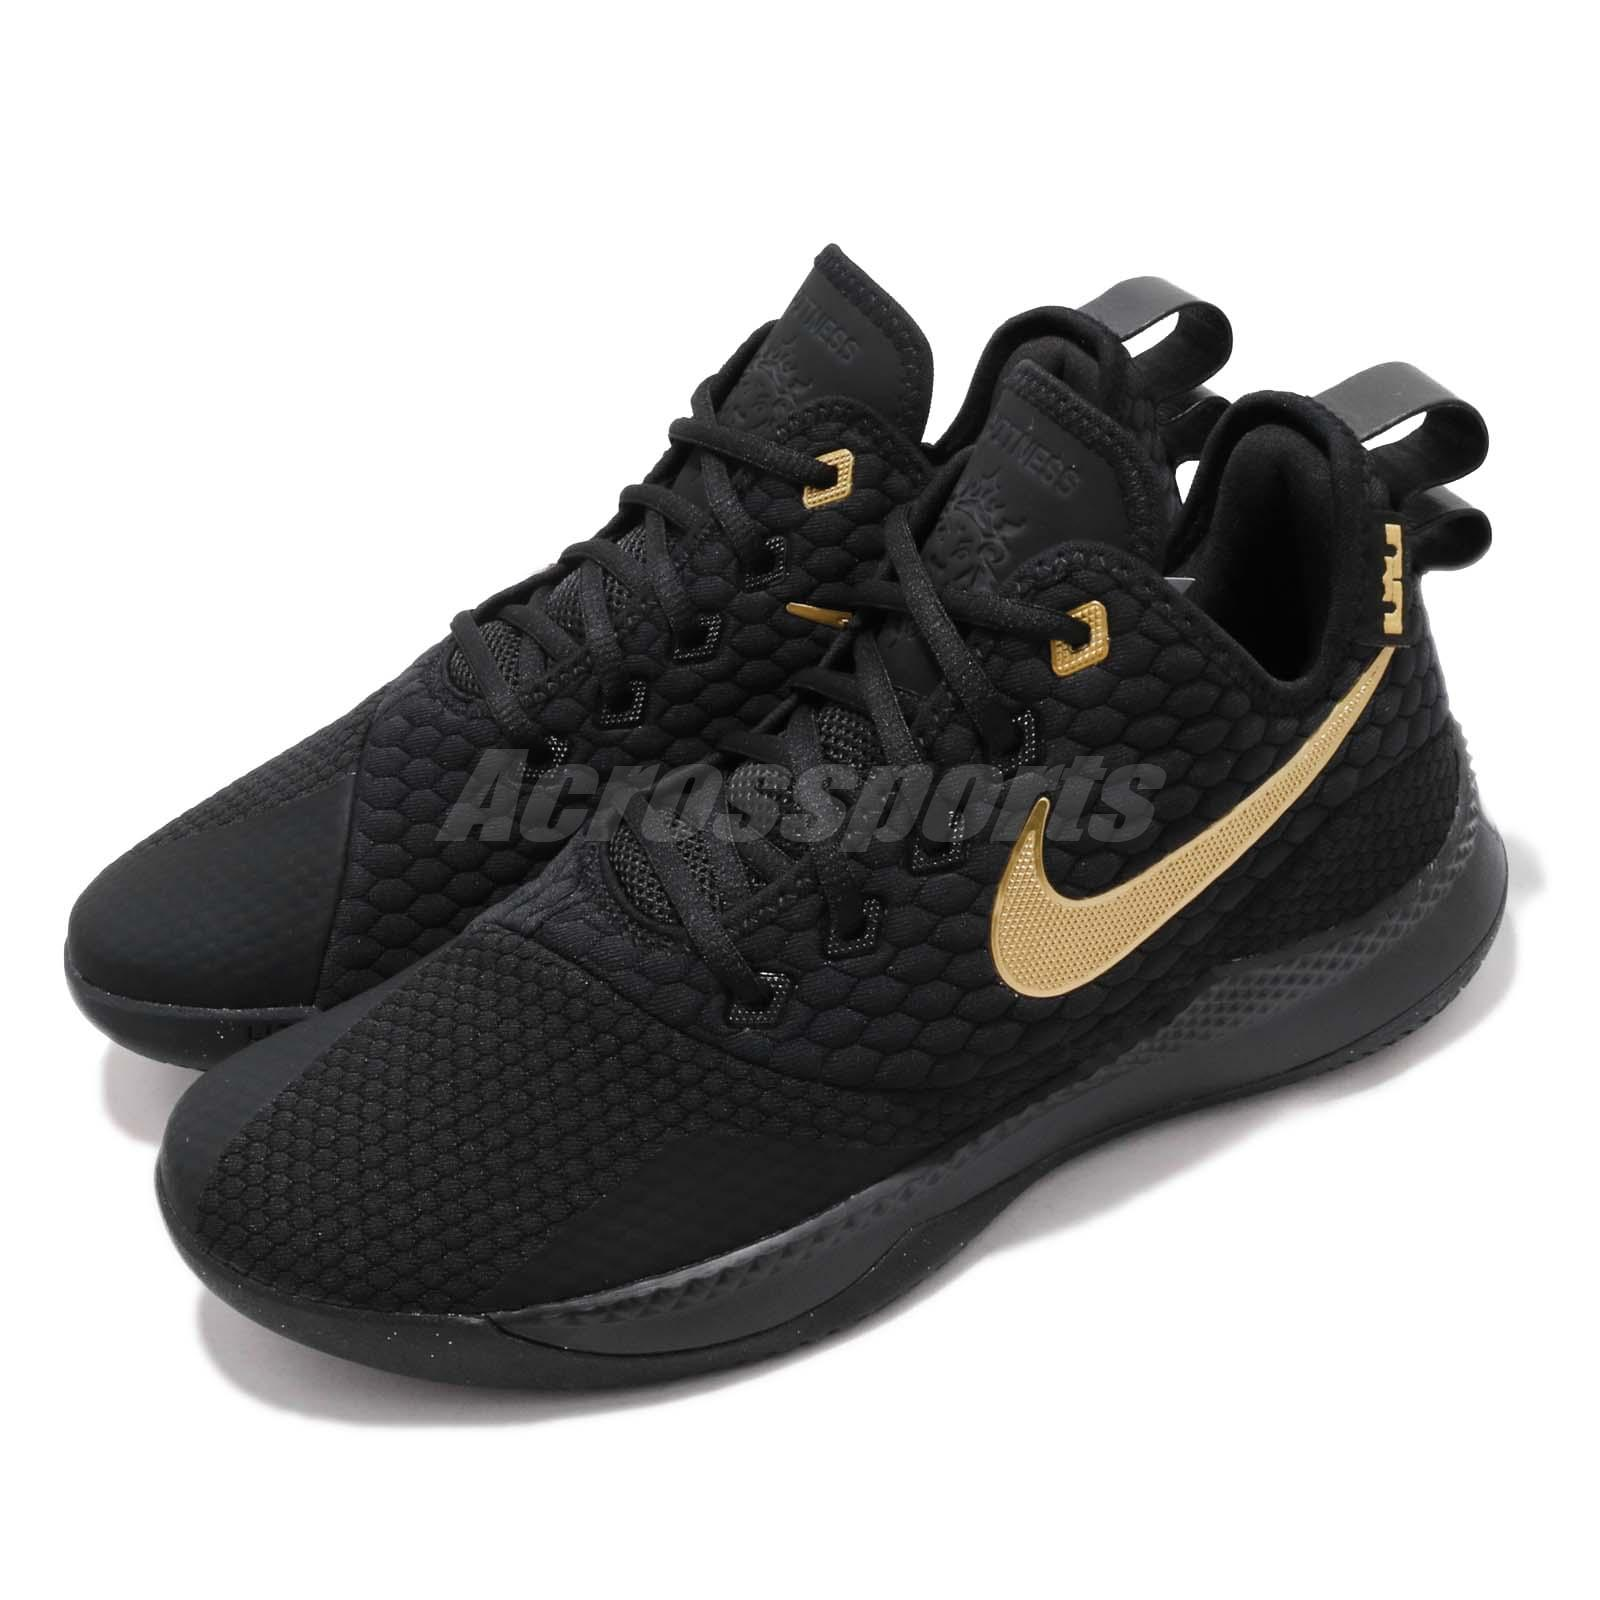 3bdd41e8da8 Details about Nike LeBron Witness III EP 3 James LBJ Black Gold Men  Basketball Shoe AO4432-003